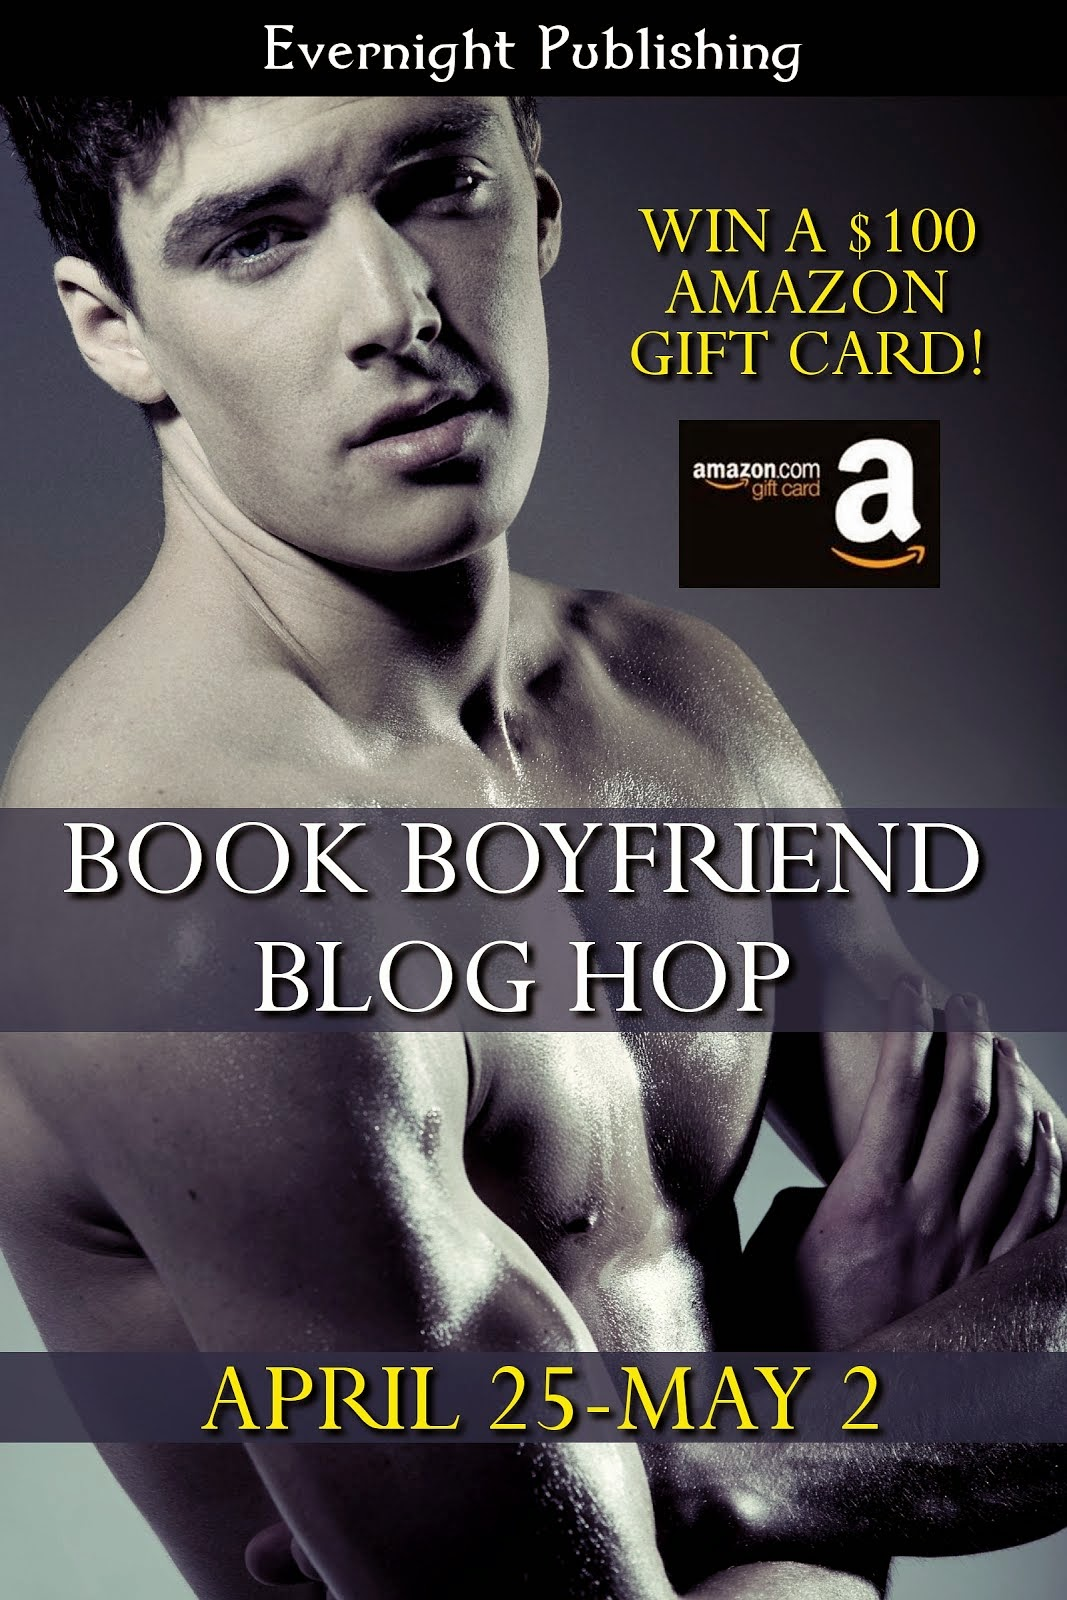 Book Boyfriend Blog Hop!